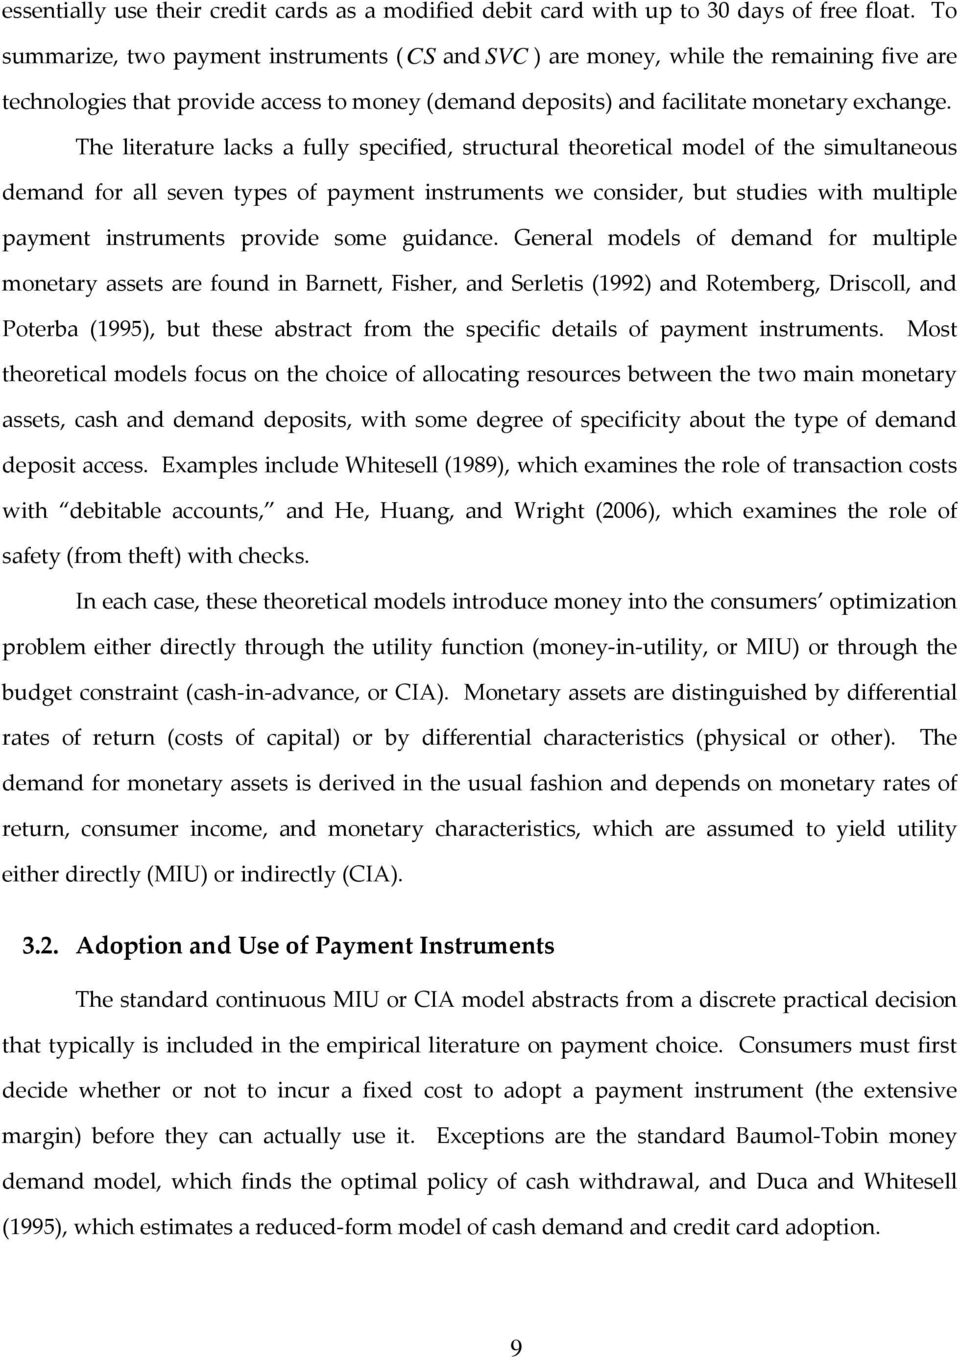 The literature lacks a fully specified, structural theoretical model of the simultaneous demand for all seven types of payment instruments we consider, but studies with multiple payment instruments